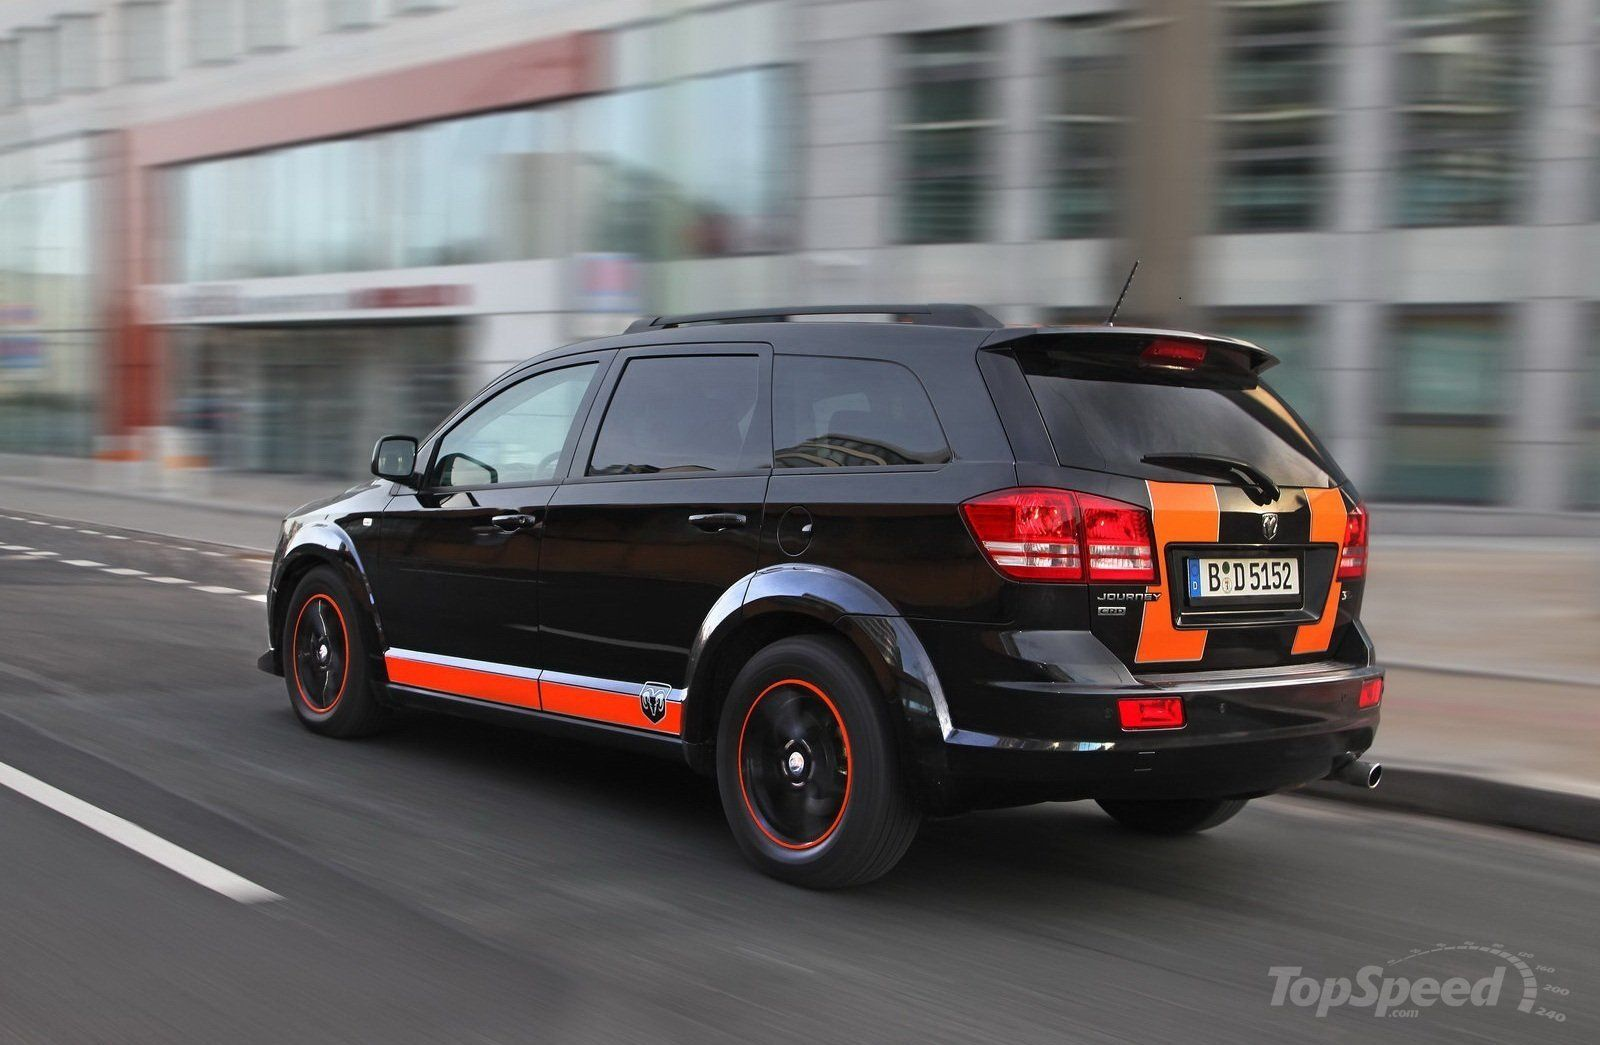 Pimped dodge journey we just bought a journey for the family maybe we should